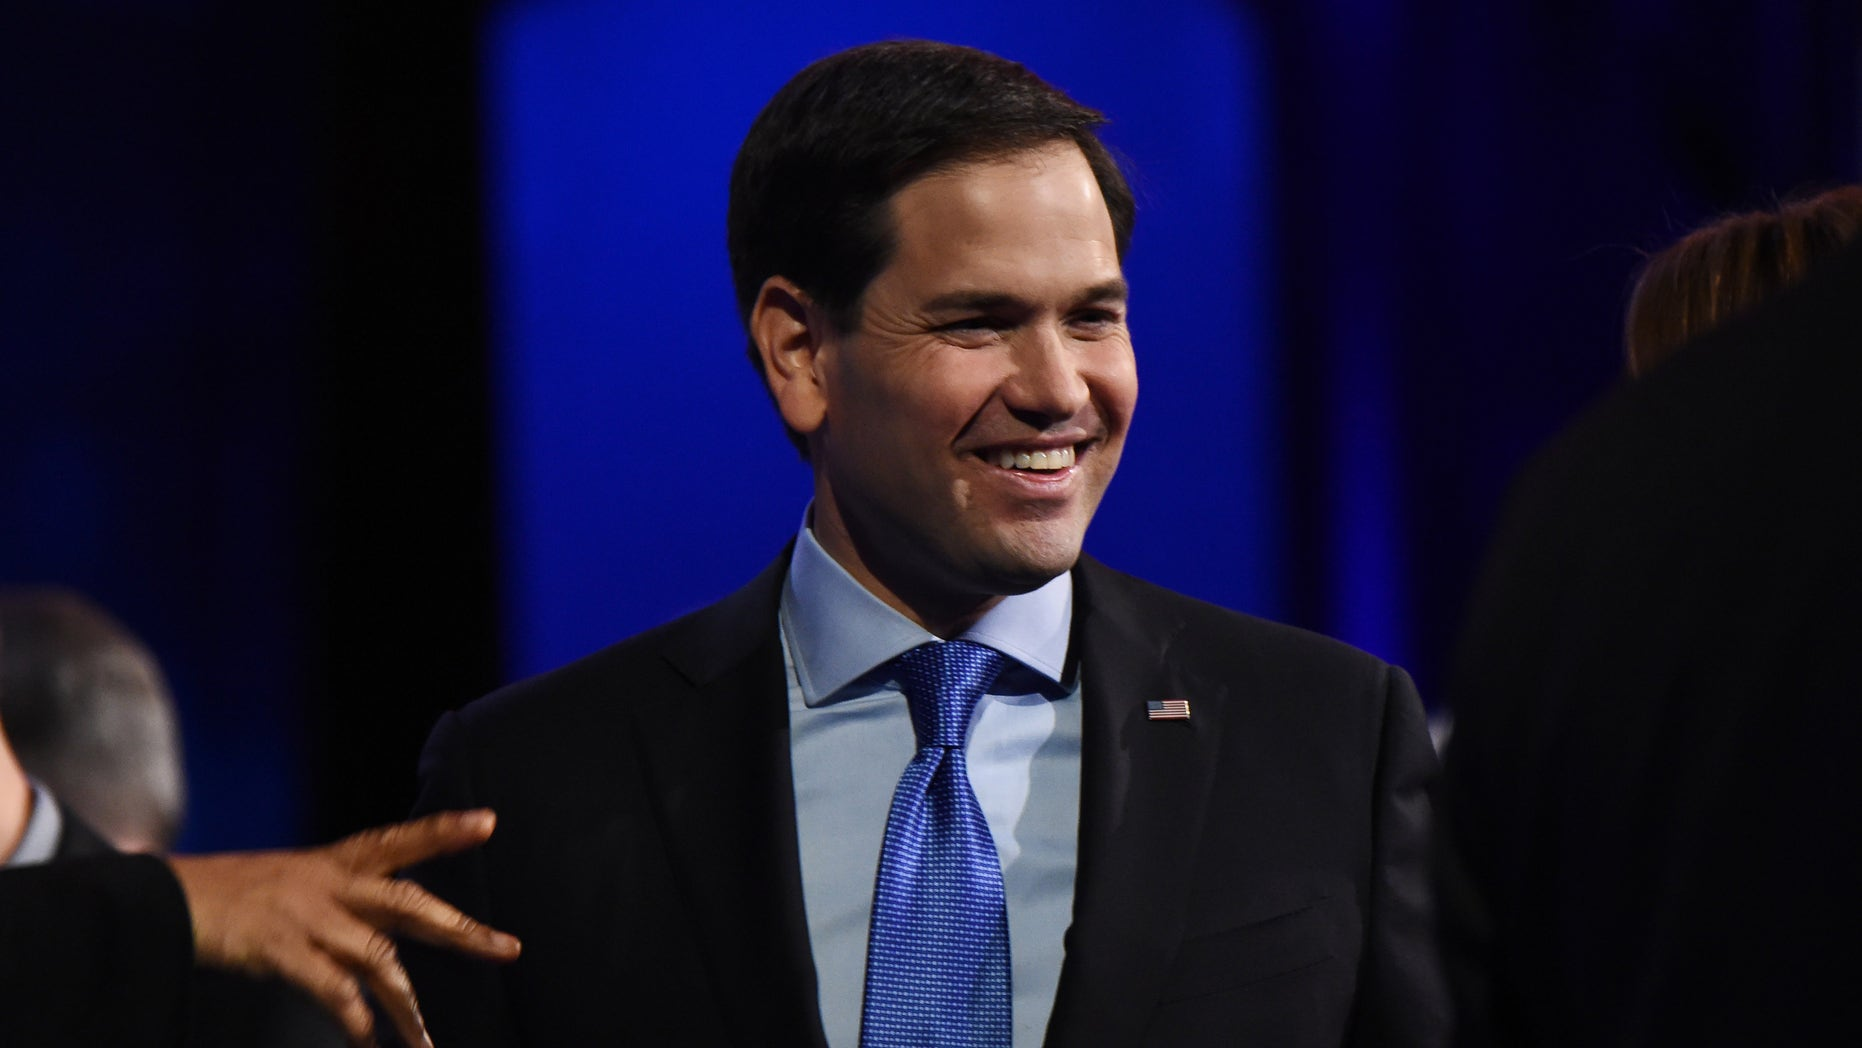 Republican presidential hopeful Marco Rubio attends the third Republican Presidential Debate, October 28, 2015 at the Coors Event Center at the University of Colorado in Boulder, Colorado.  AFP PHOTO / ROBYN BECK        (Photo credit should read ROBYN BECK/AFP/Getty Images)